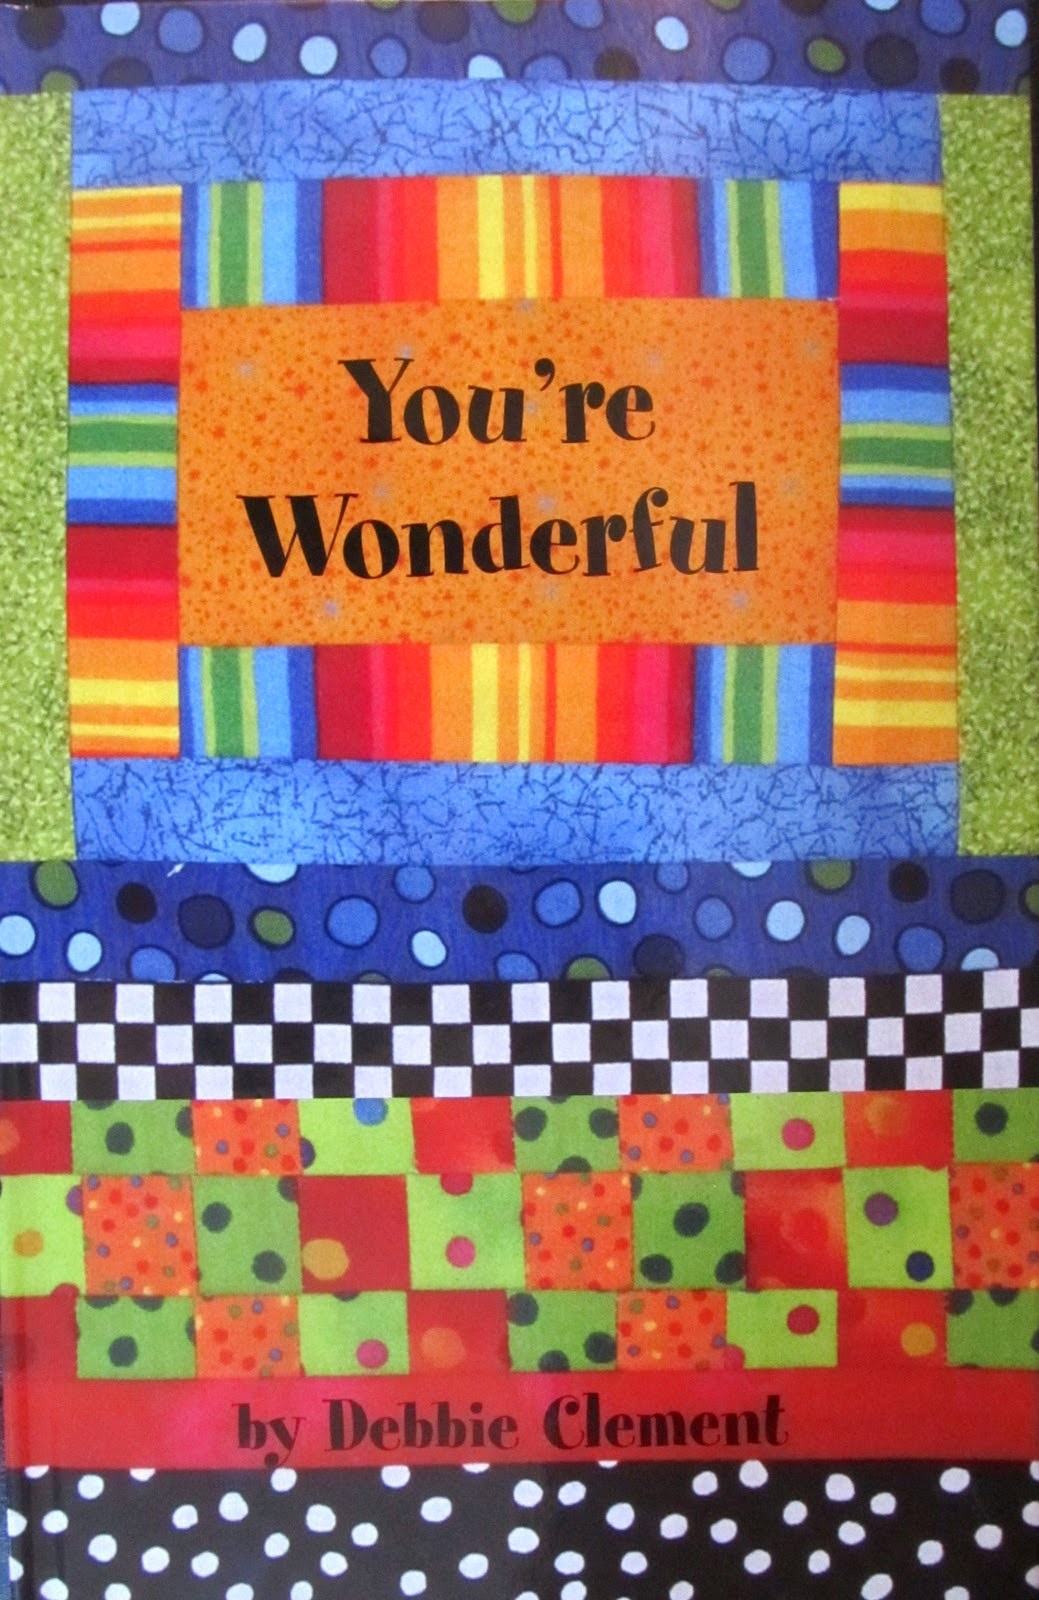 """You're Wonderful"" by Debbie Clement (Song of Self Esteem: to launch and conclude the school year)"